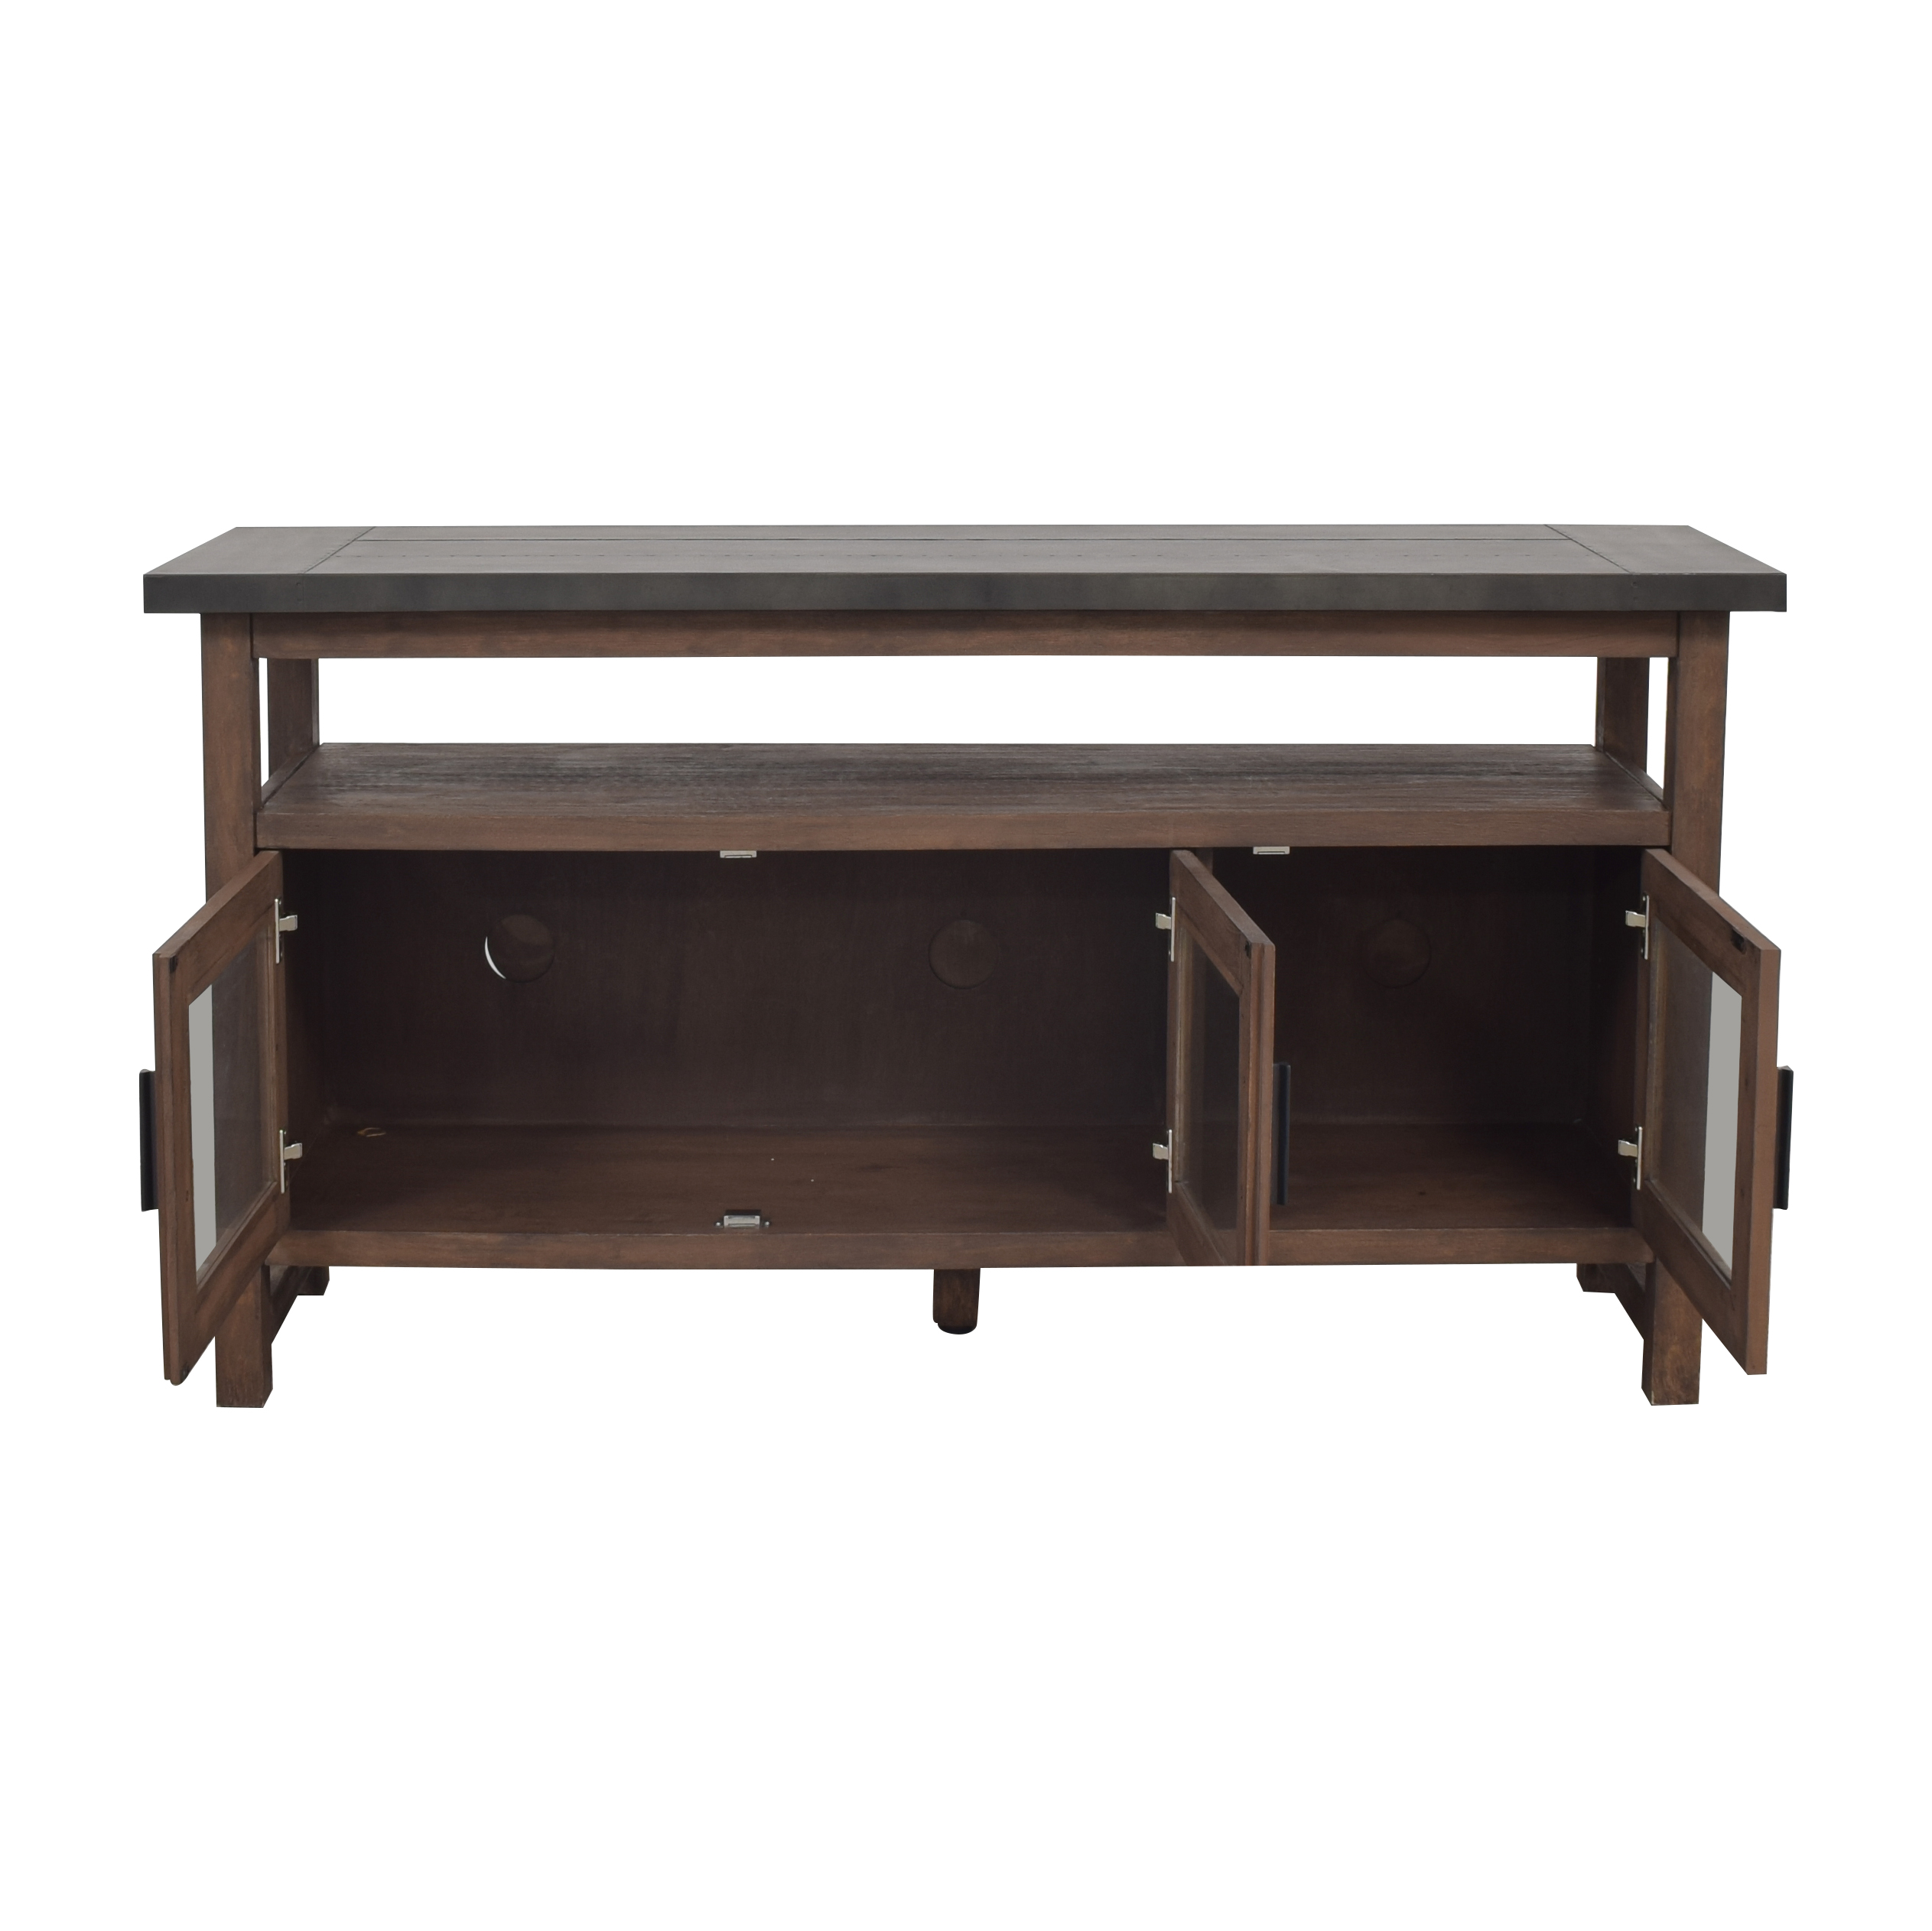 shop Crate & Barrel Galvin Sideboard Crate & Barrel